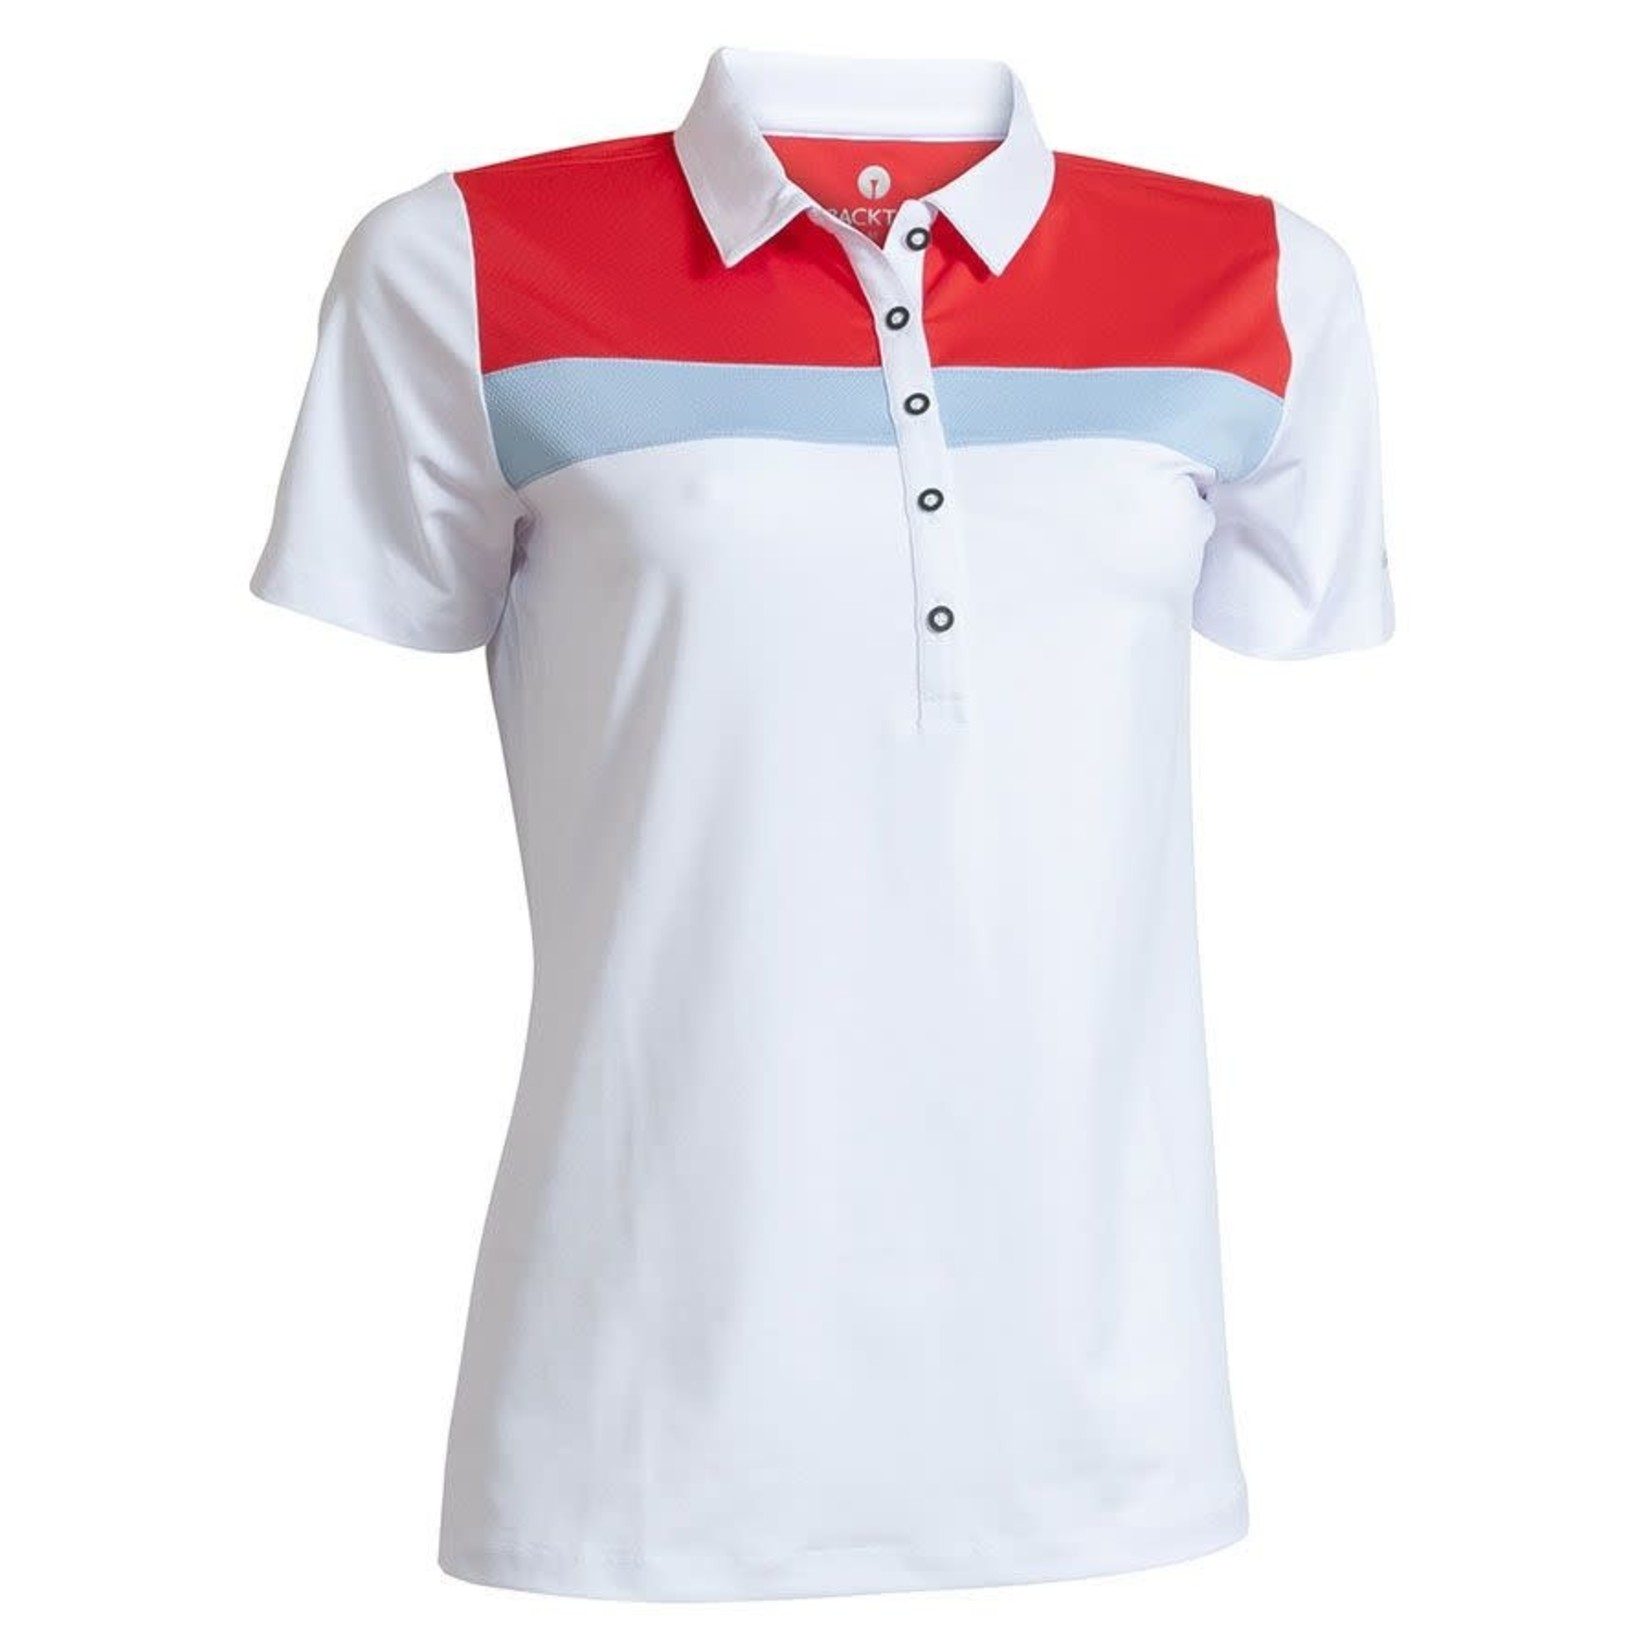 Backtee Backtee Ladies Sports Qd Uv Polo wit/rood/lblauw S